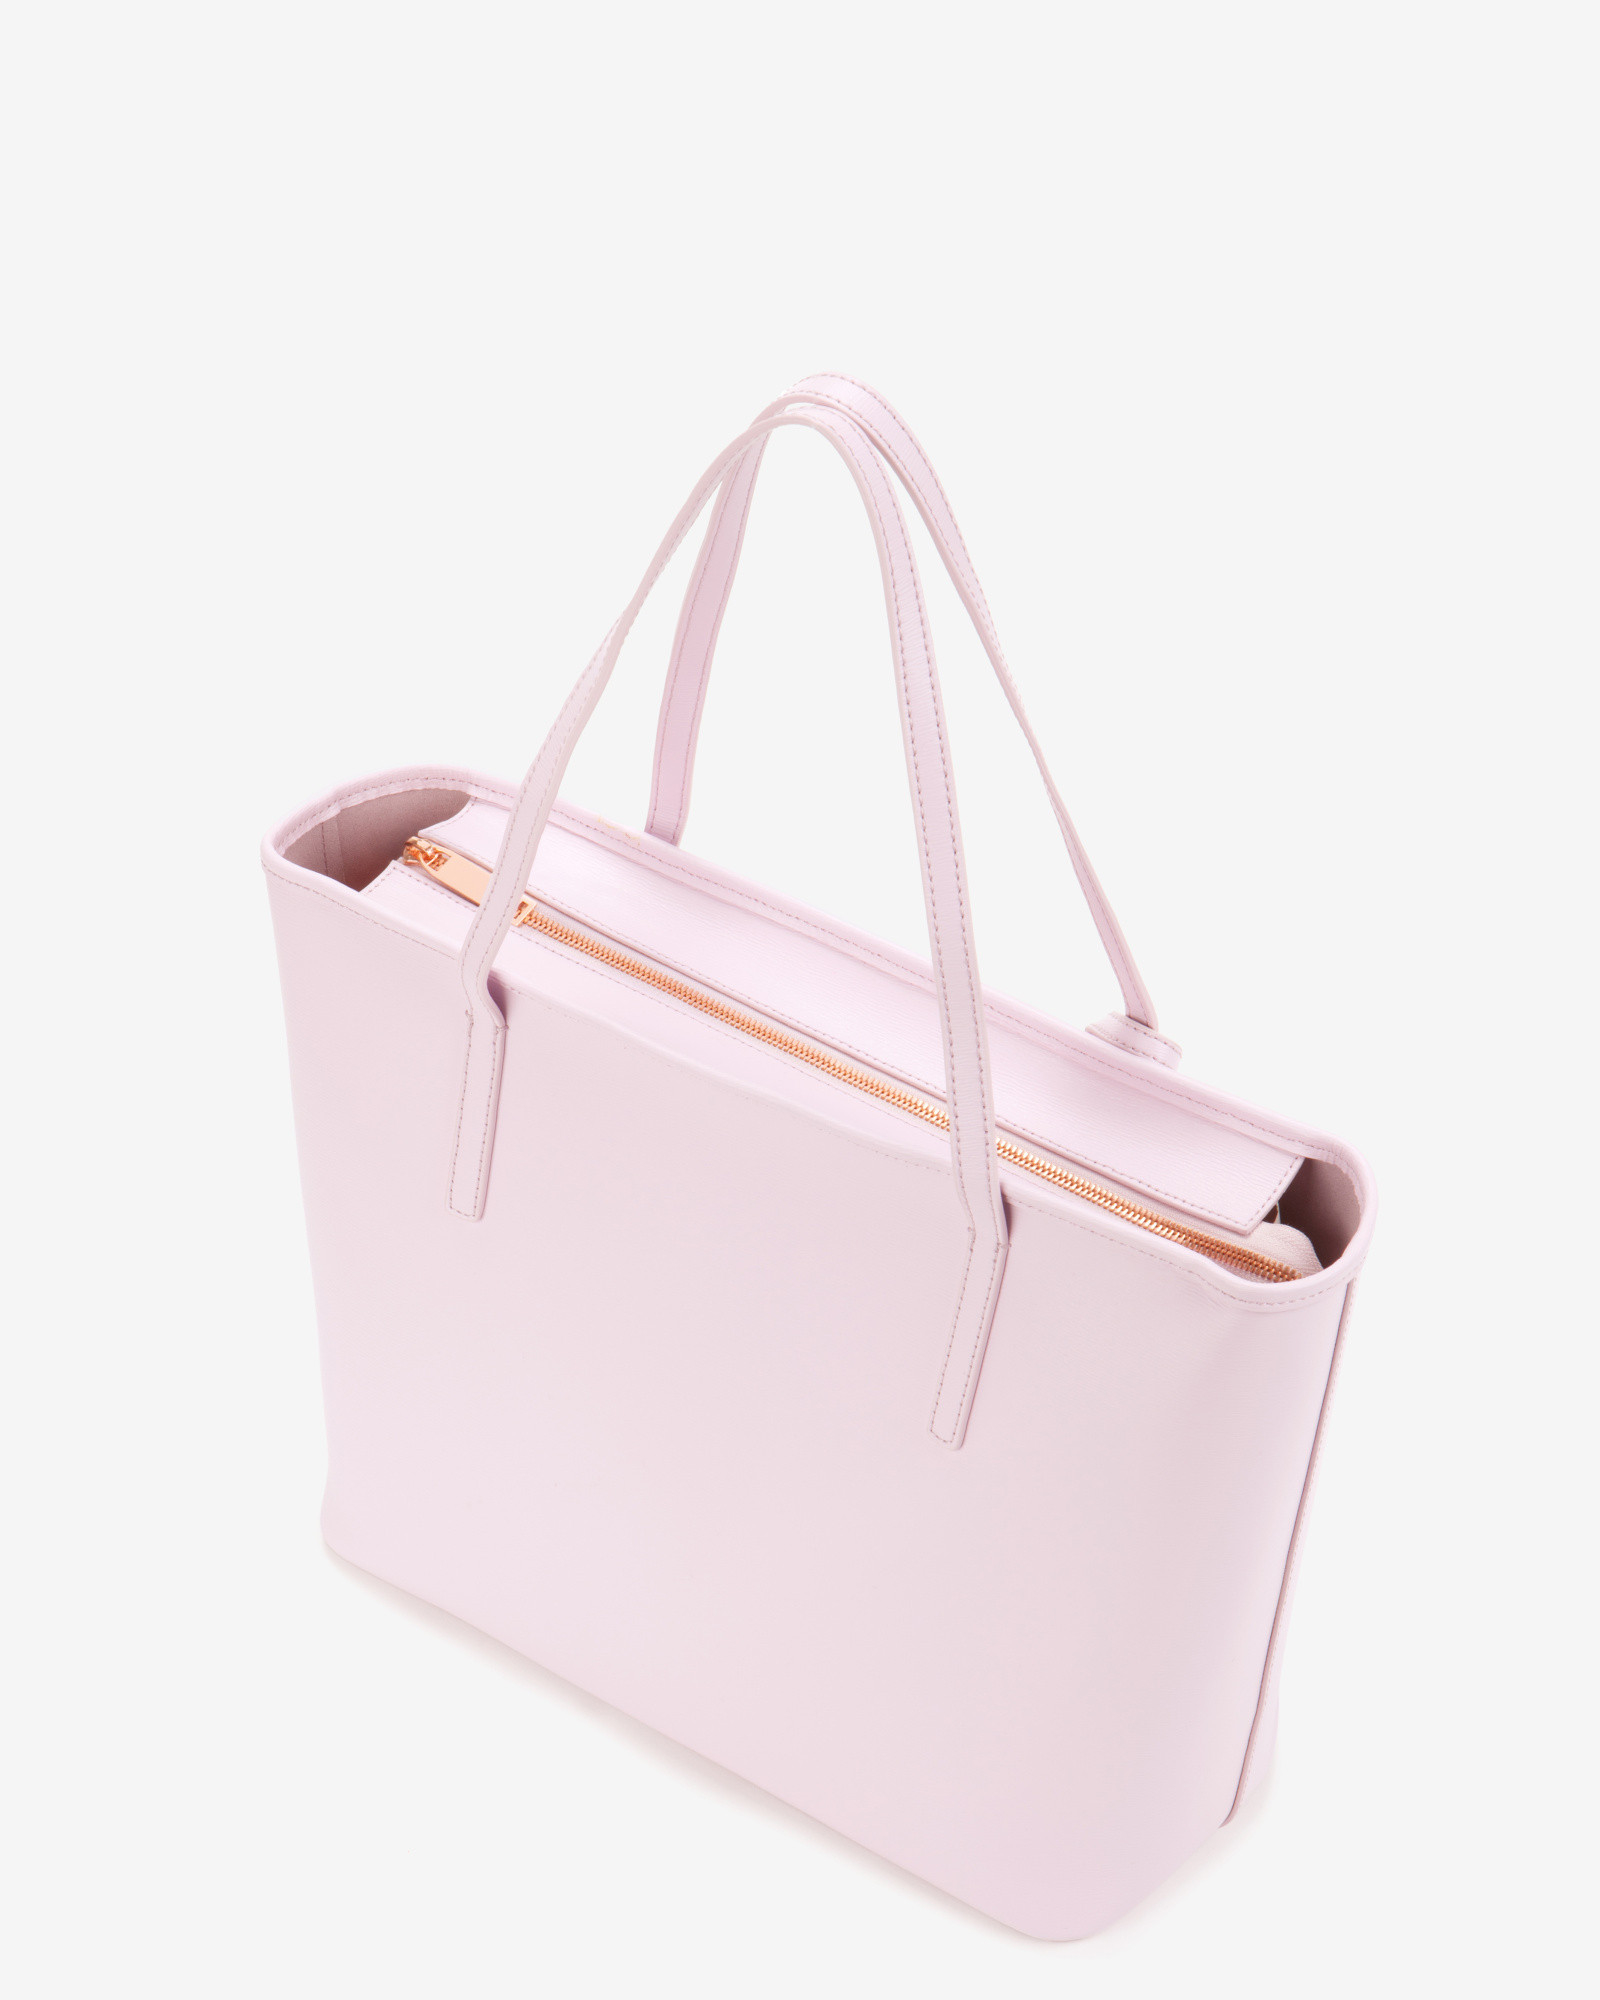 ac18af1c0b Ted Baker Bow Detail Leather Shopper Bag in Pink - Lyst